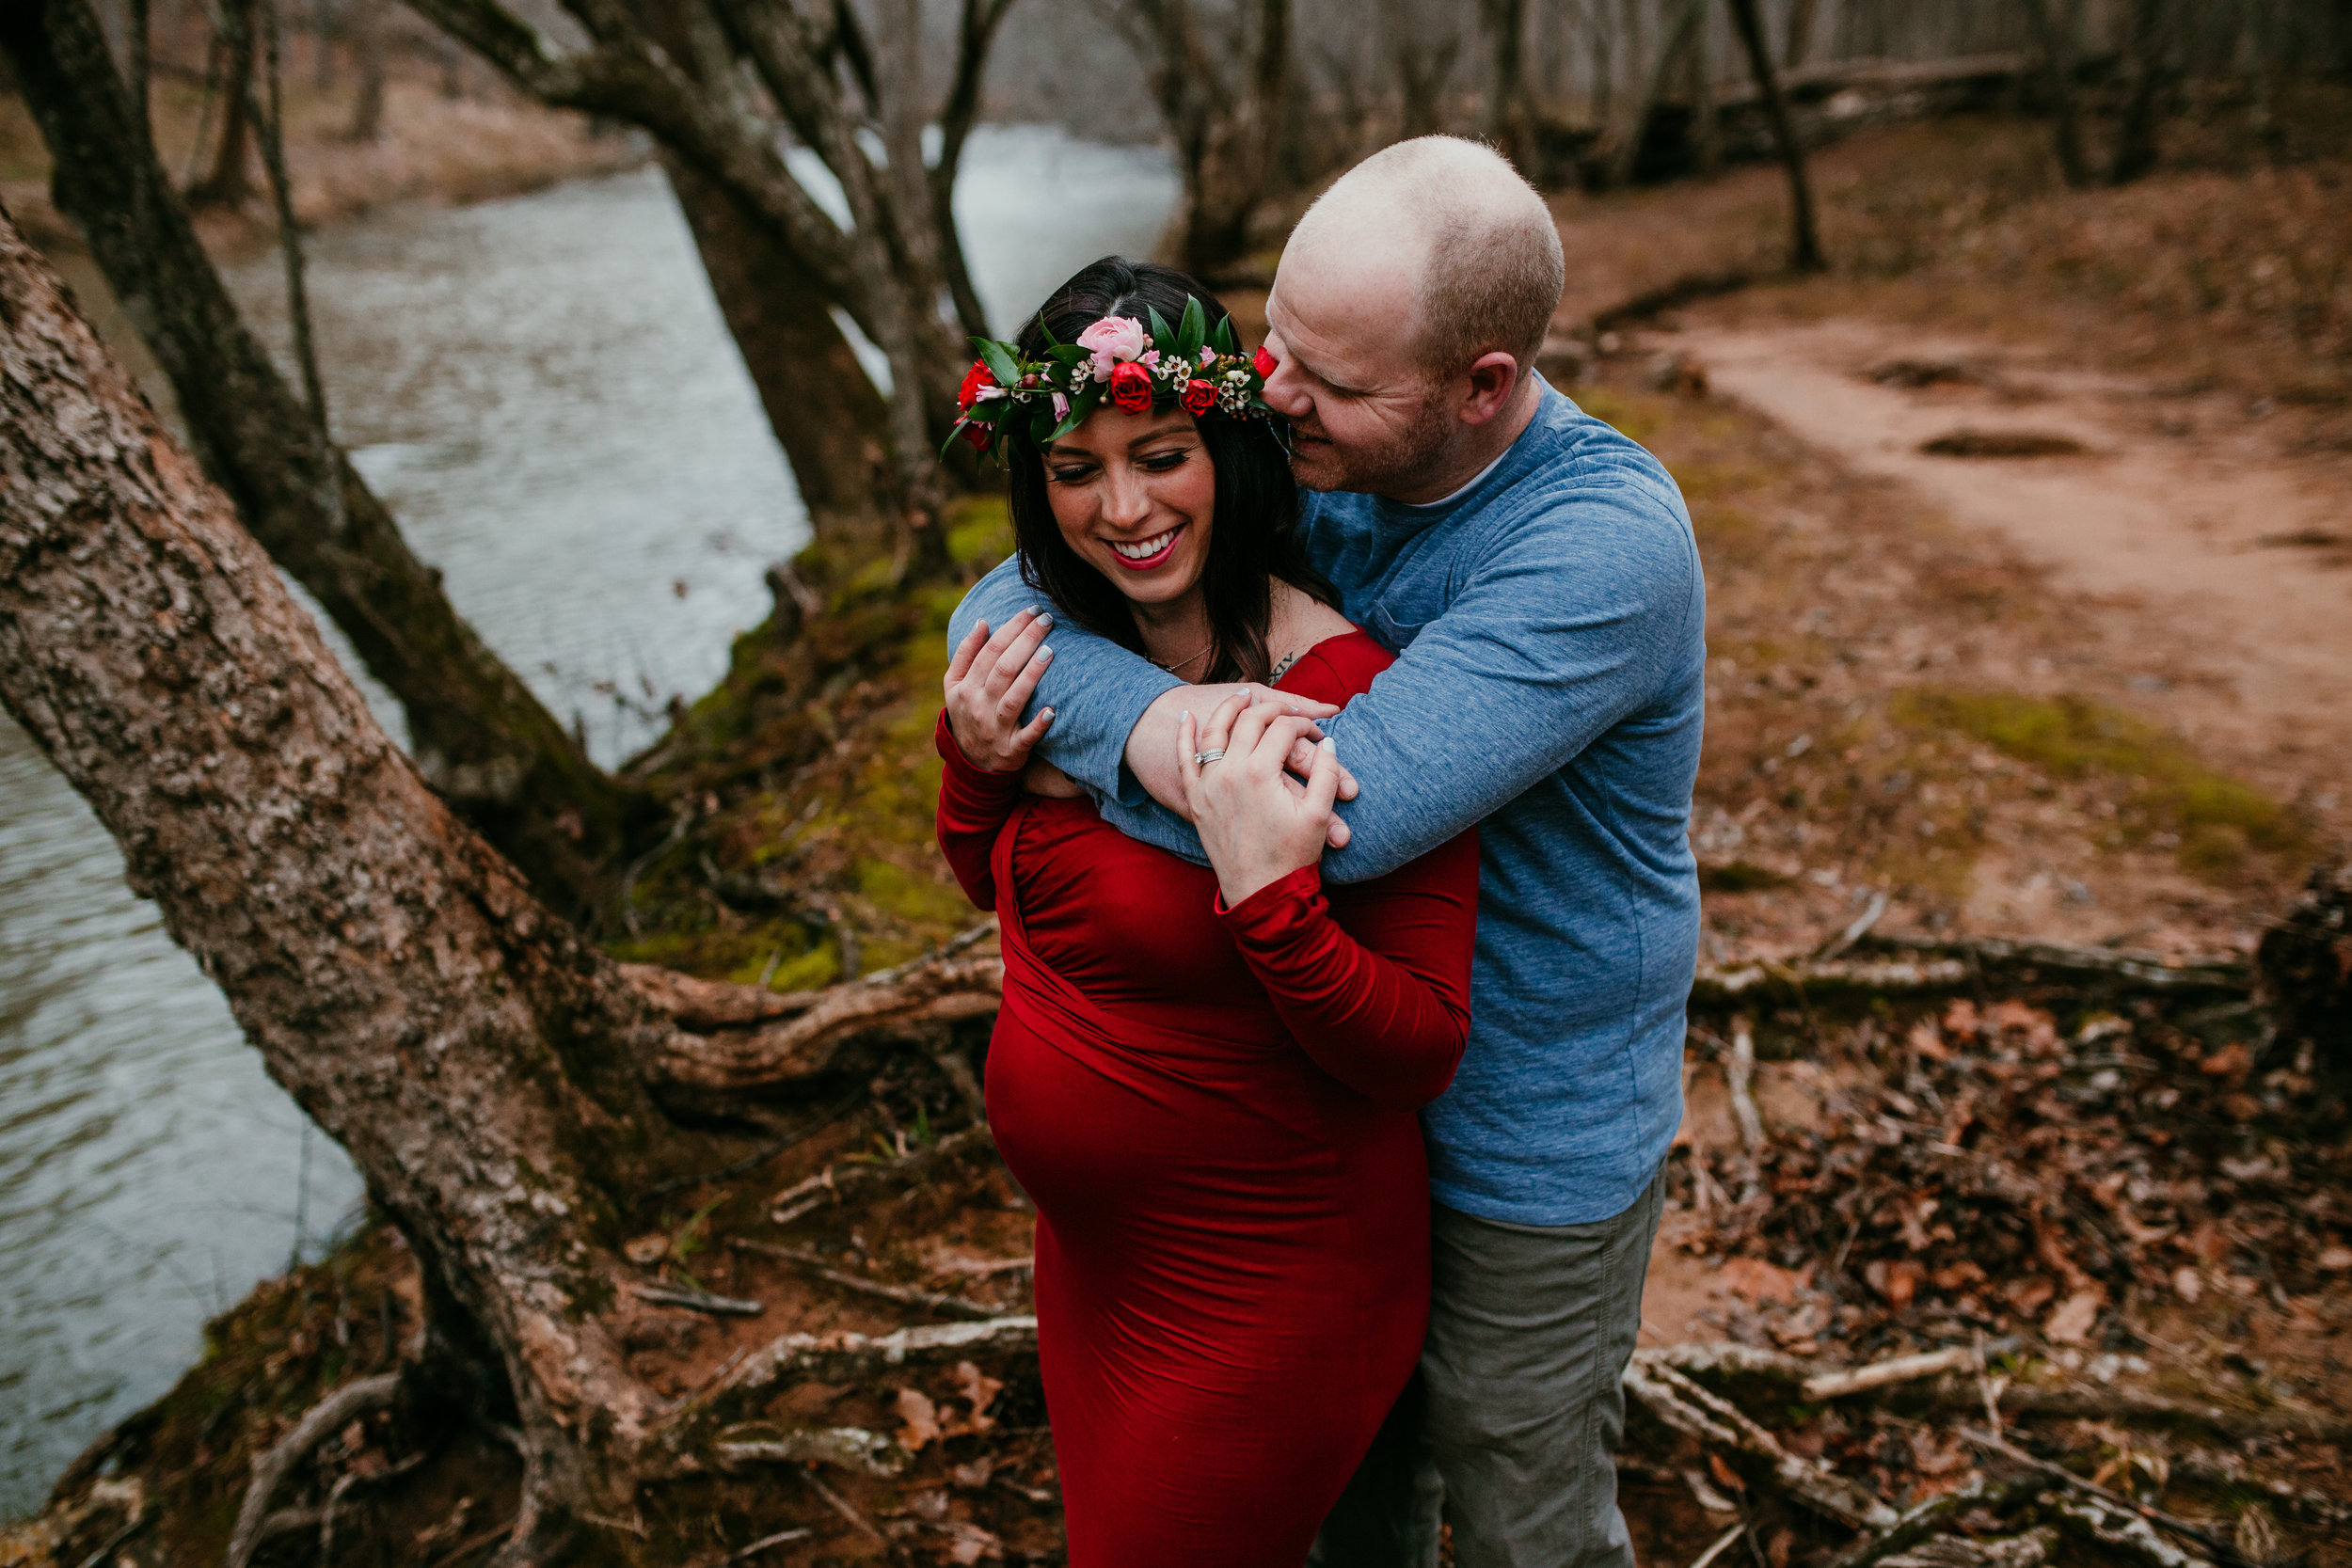 Durham Maternity Photographer | Intimate Motherhood Portraits | Hanna Hill Photography